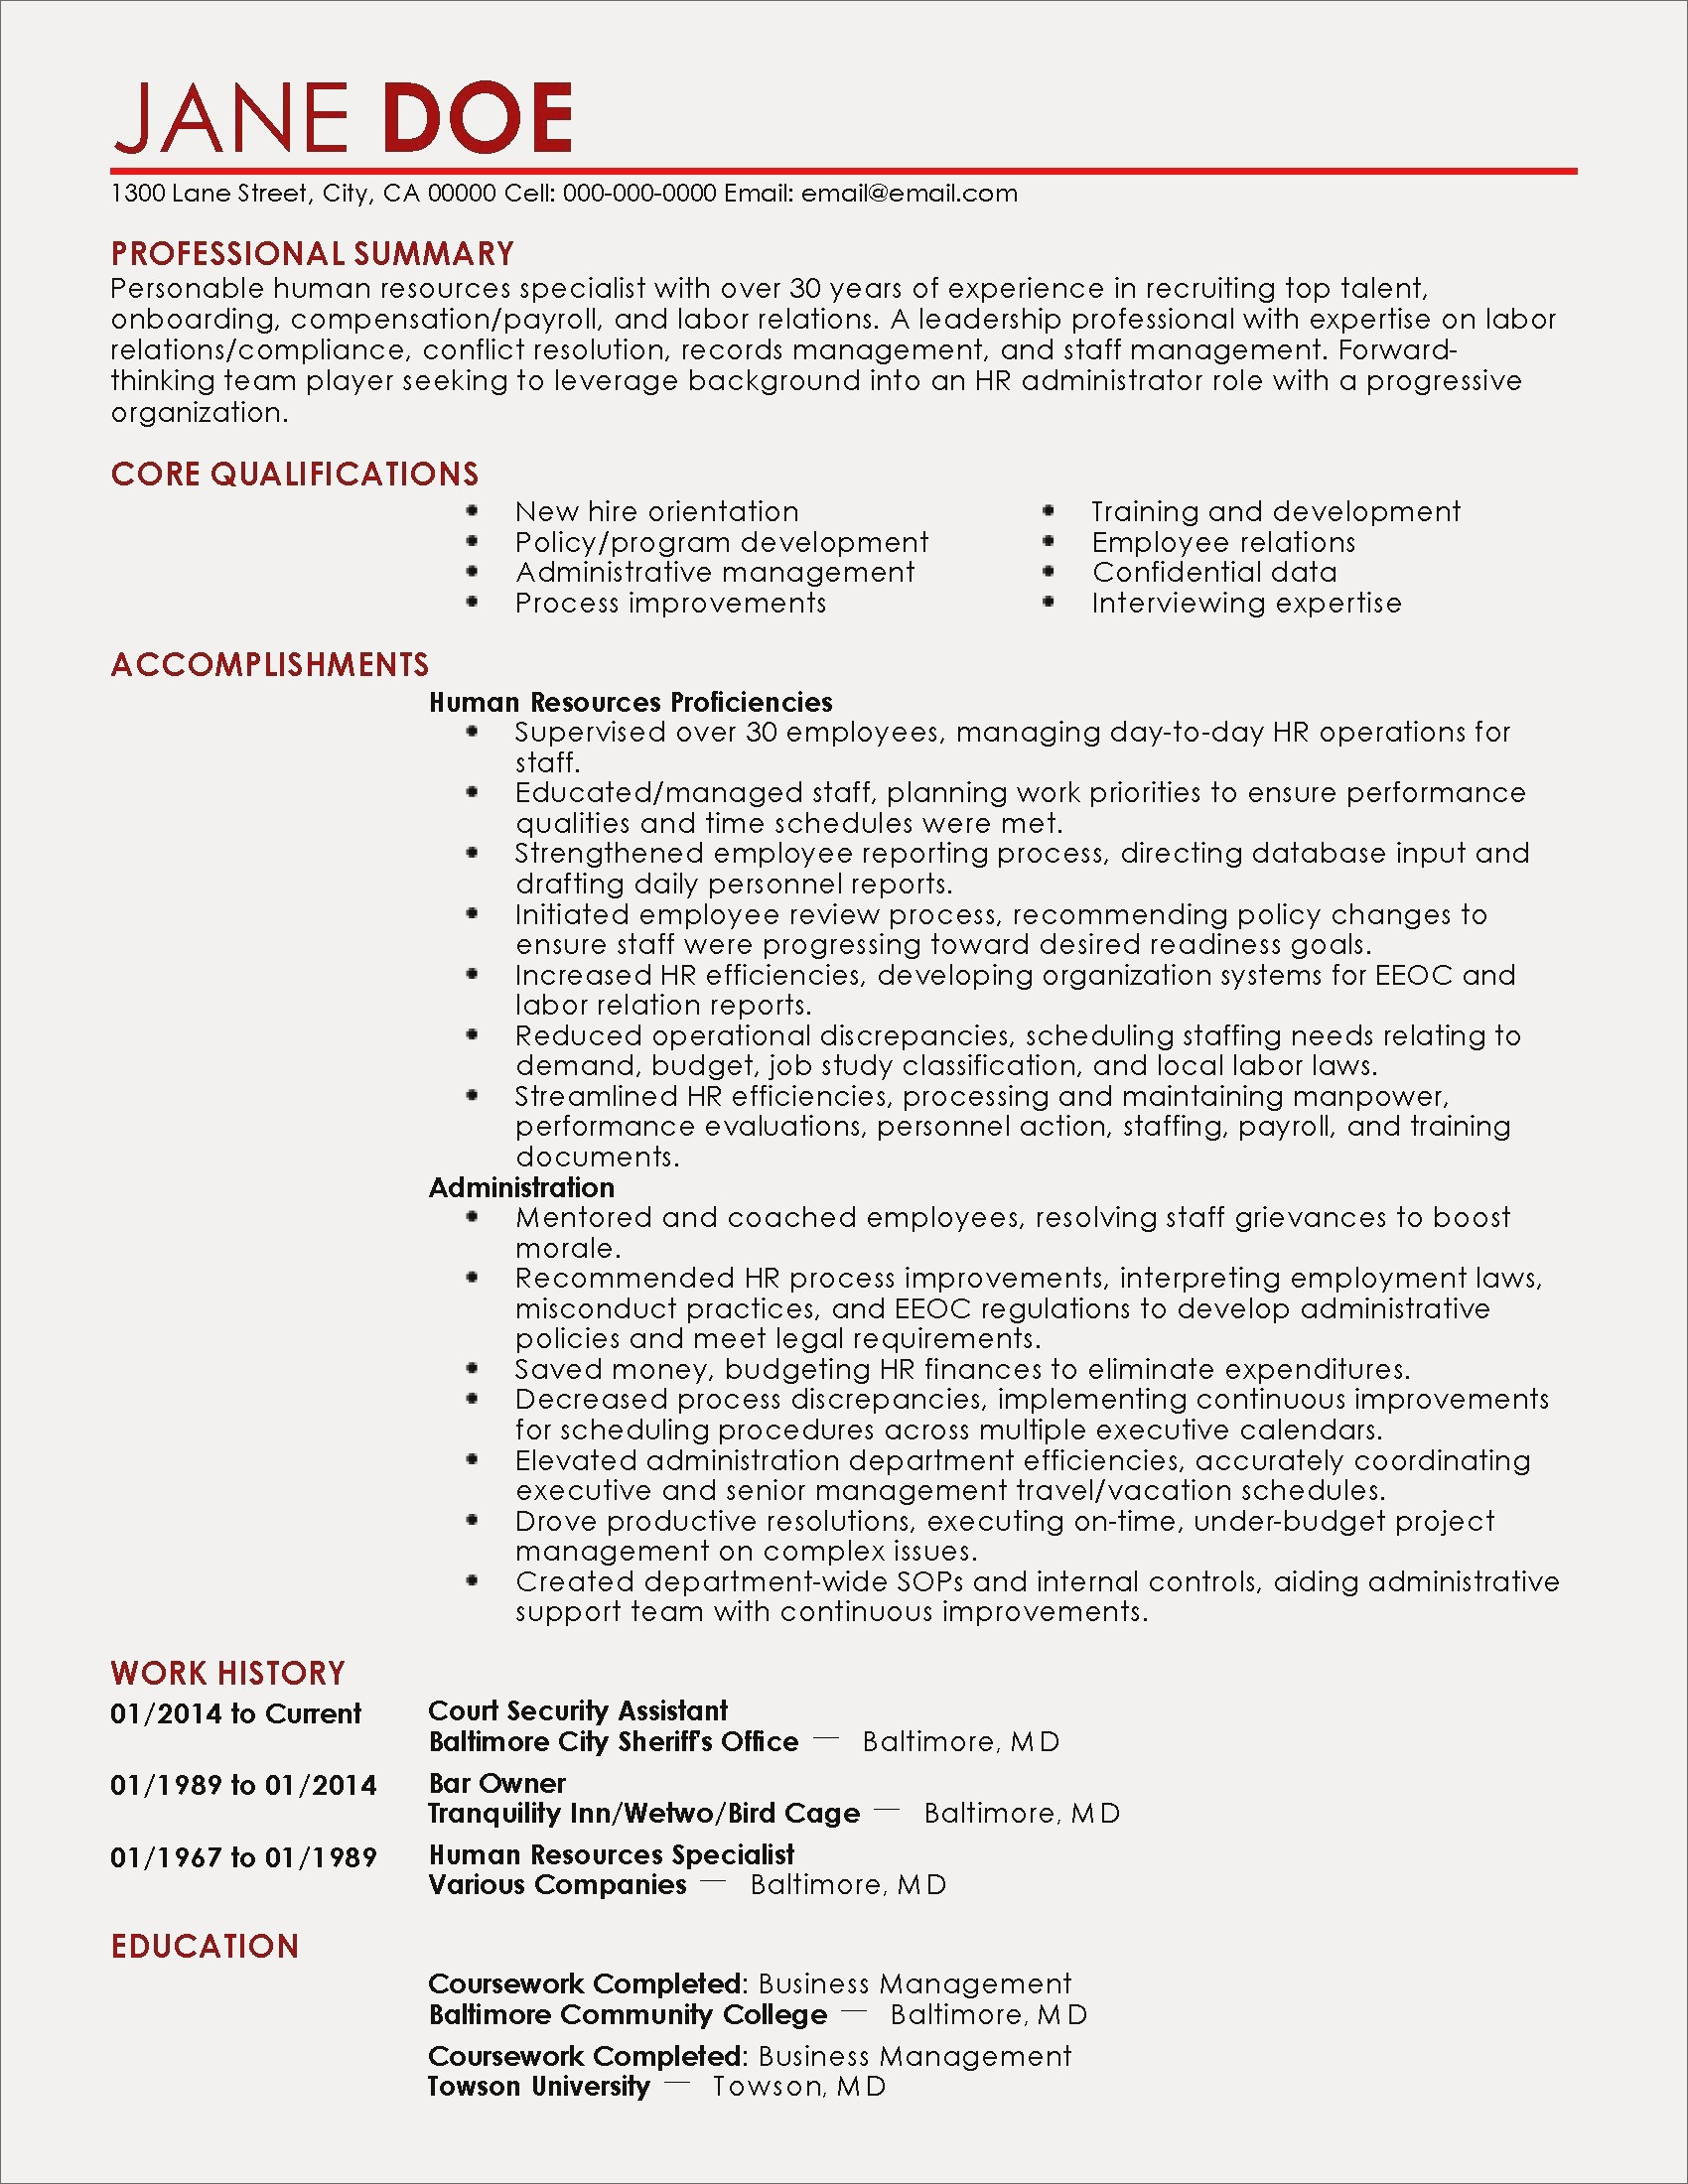 Medical assistant Resume Examples - Medical Administrative assistant Resume Samples Save Medical